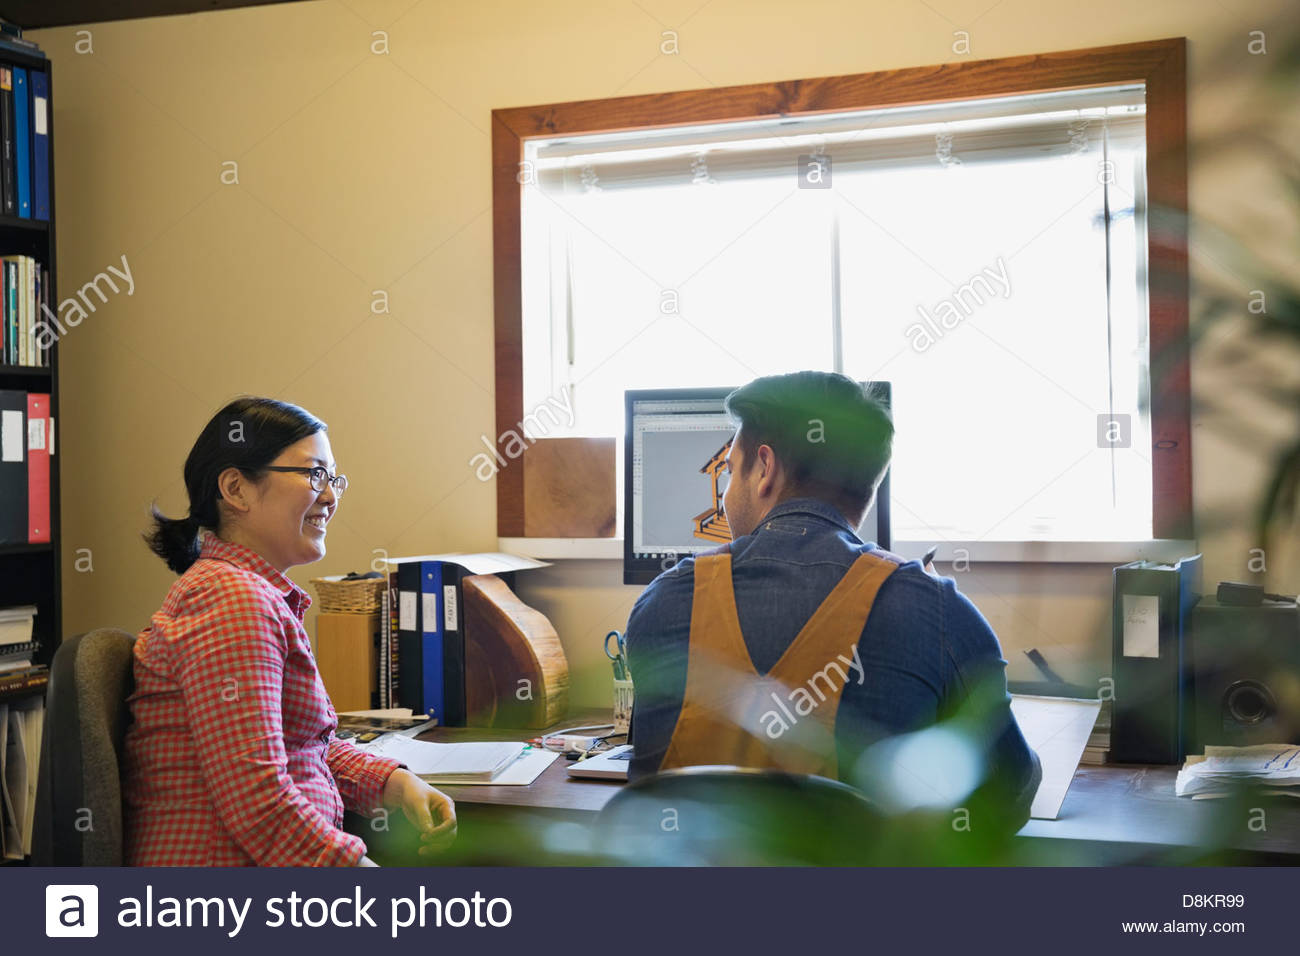 Coworkers discussing CAD drawings on computer screen - Stock Image